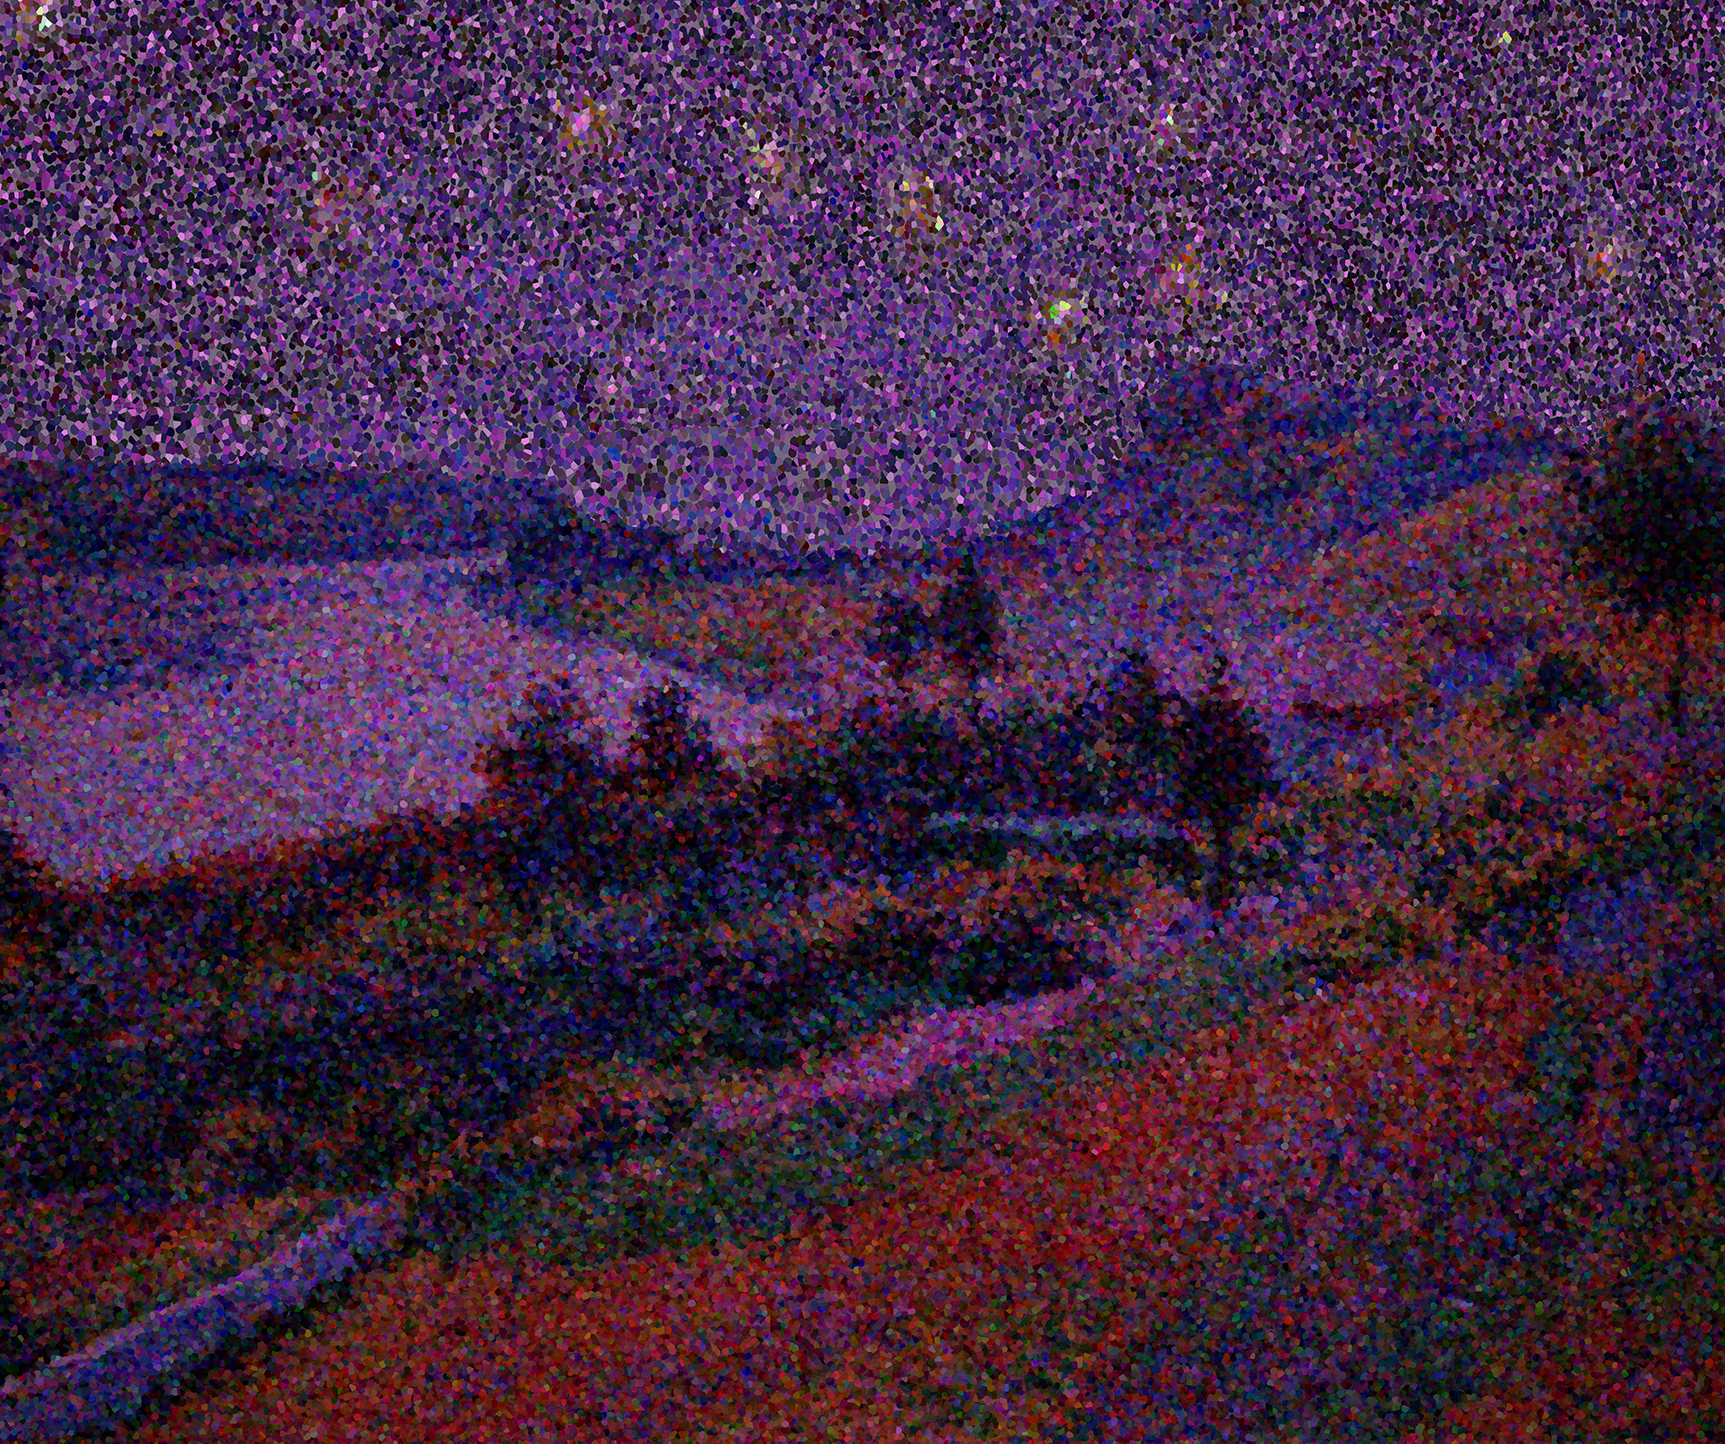 a forest scene by a lake under a purple starry night sky lit with yellow stars